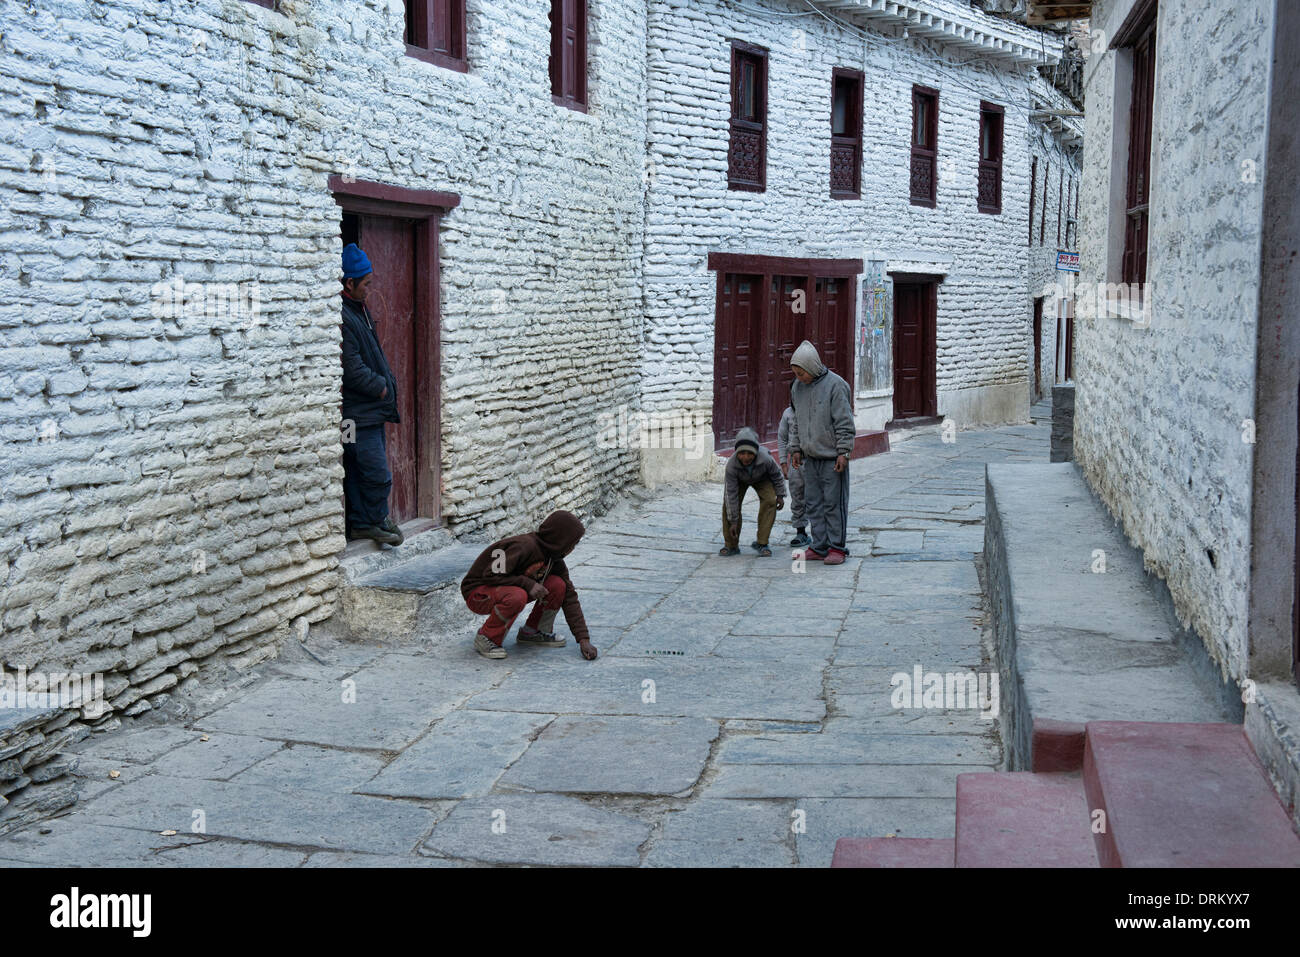 playing marbles in Marpha village in the Annapurna region of Nepal - Stock Image